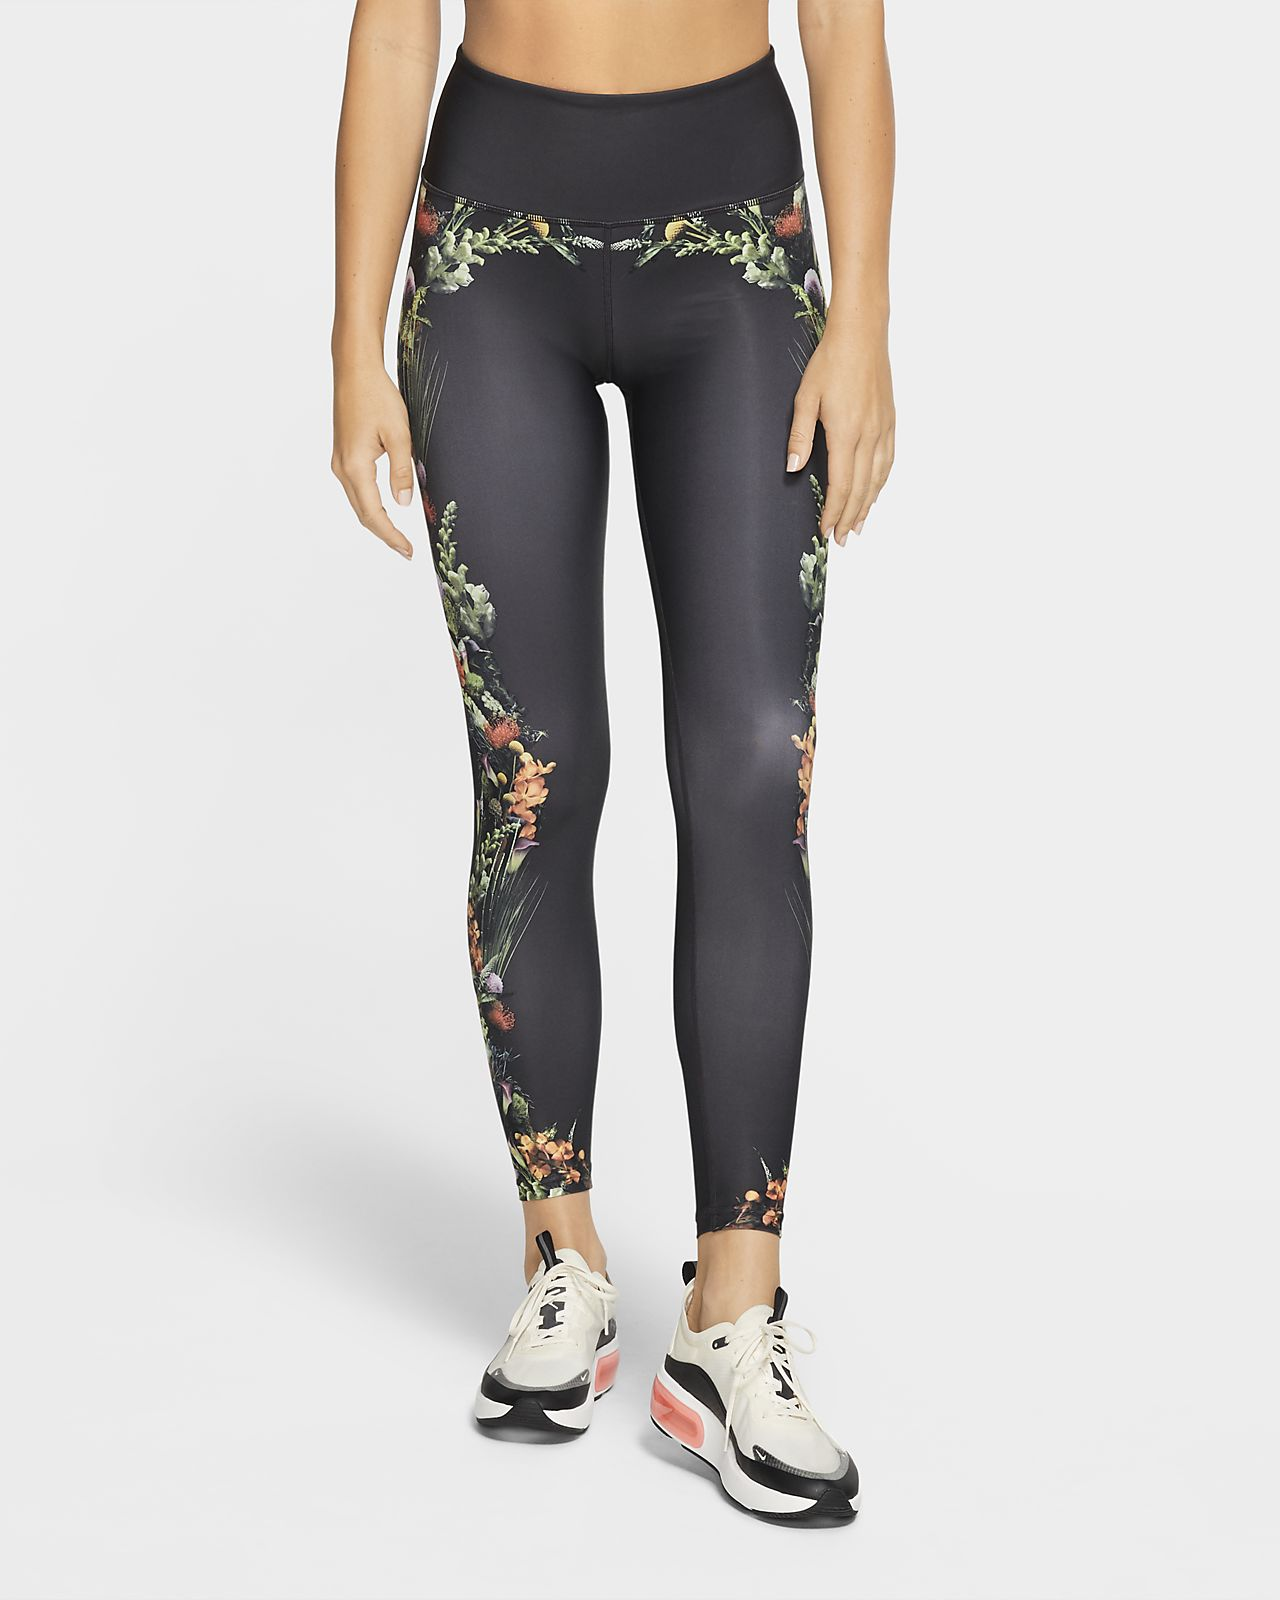 Hurley Quick Dry Winter Flormal Surf-Leggings für Damen